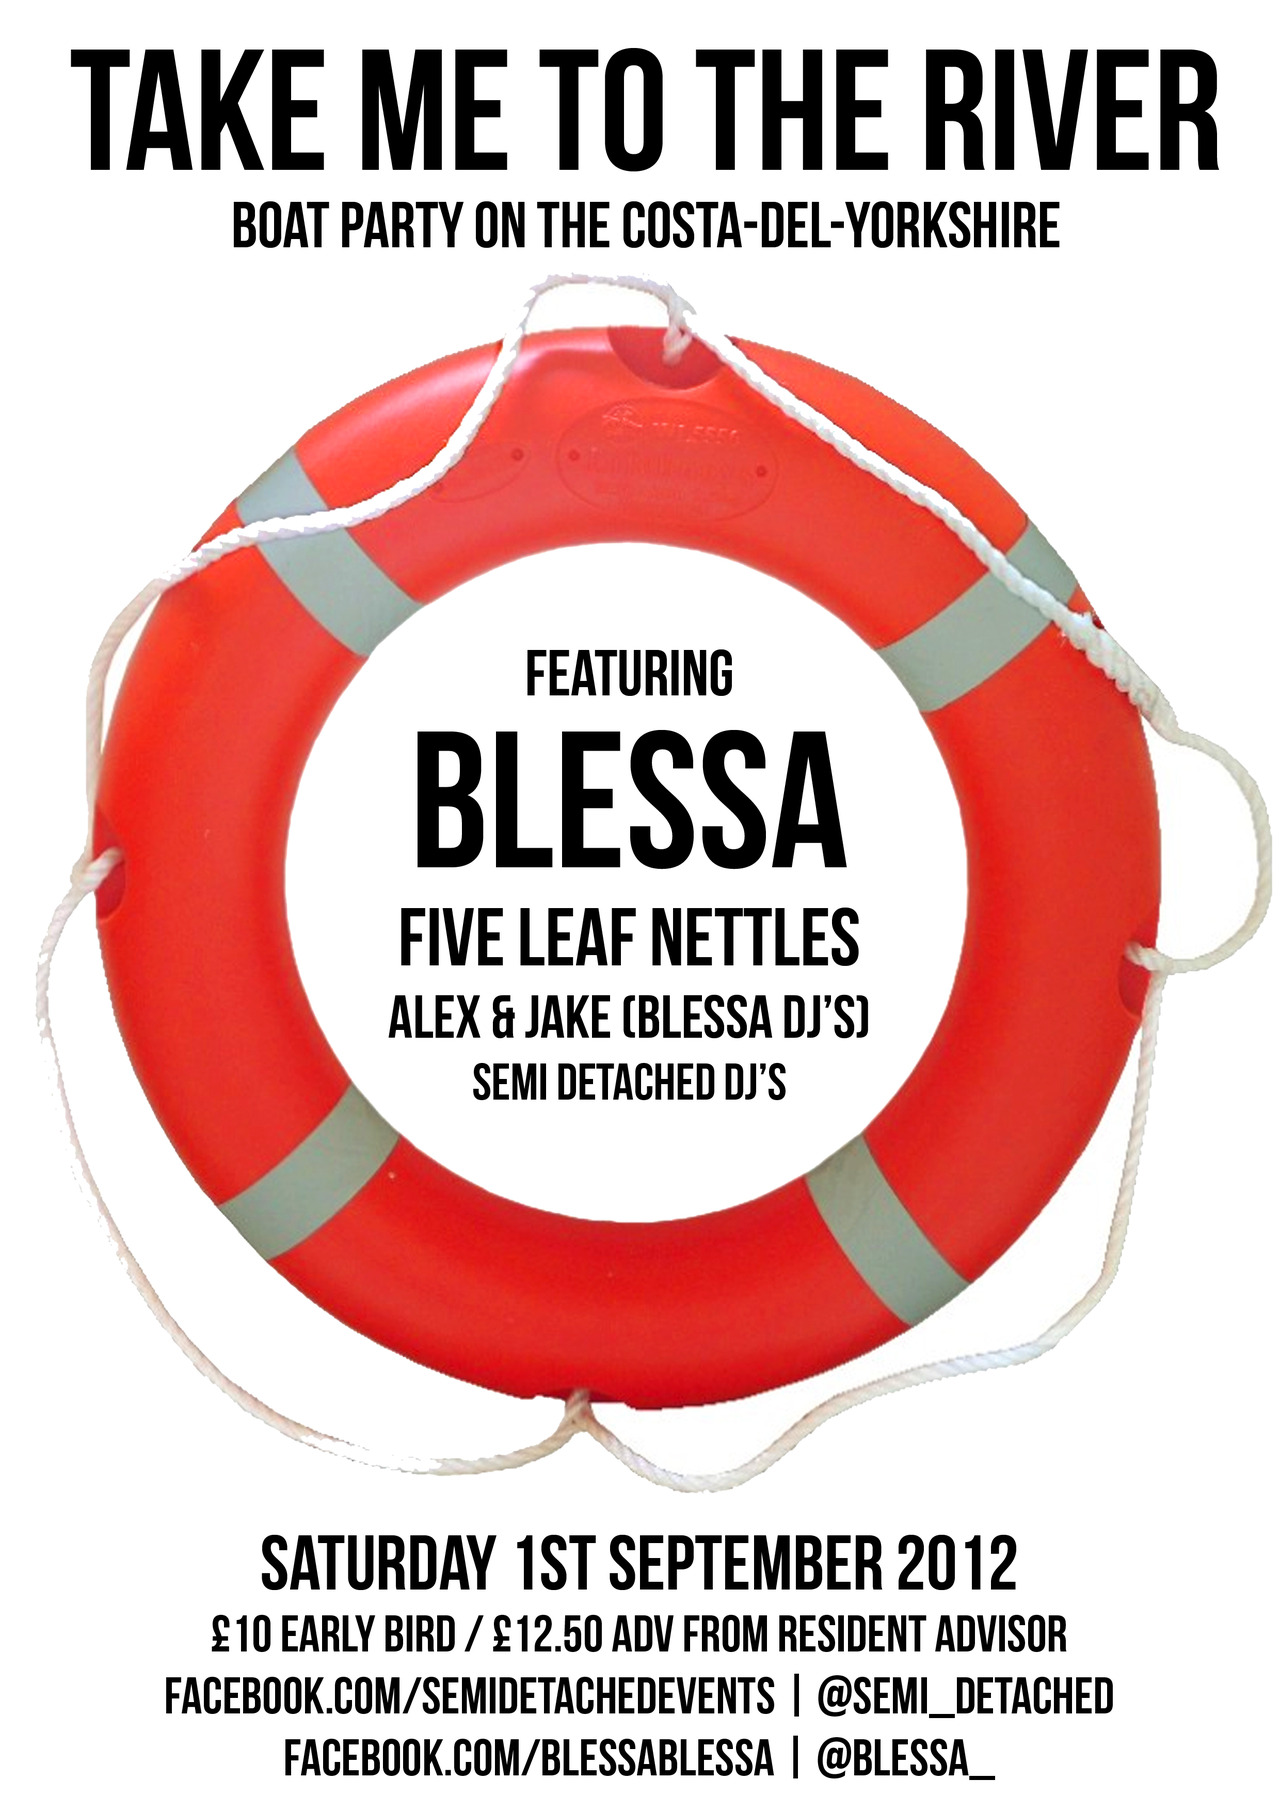 'Take Me To The River' Boat Party Saturday 1st September 2012 12pm - 12am with a four hour boat party, coach transfers and afterparty! featuring: BLESSA (live) Five Leaf Nettles (acoustic) Alex & Jake (Blessa DJ's) Semi Detached DJ's £10 early bird // £12.50 advance. More details can be found here. Limited tickets are now onsale from Resident Advisor.